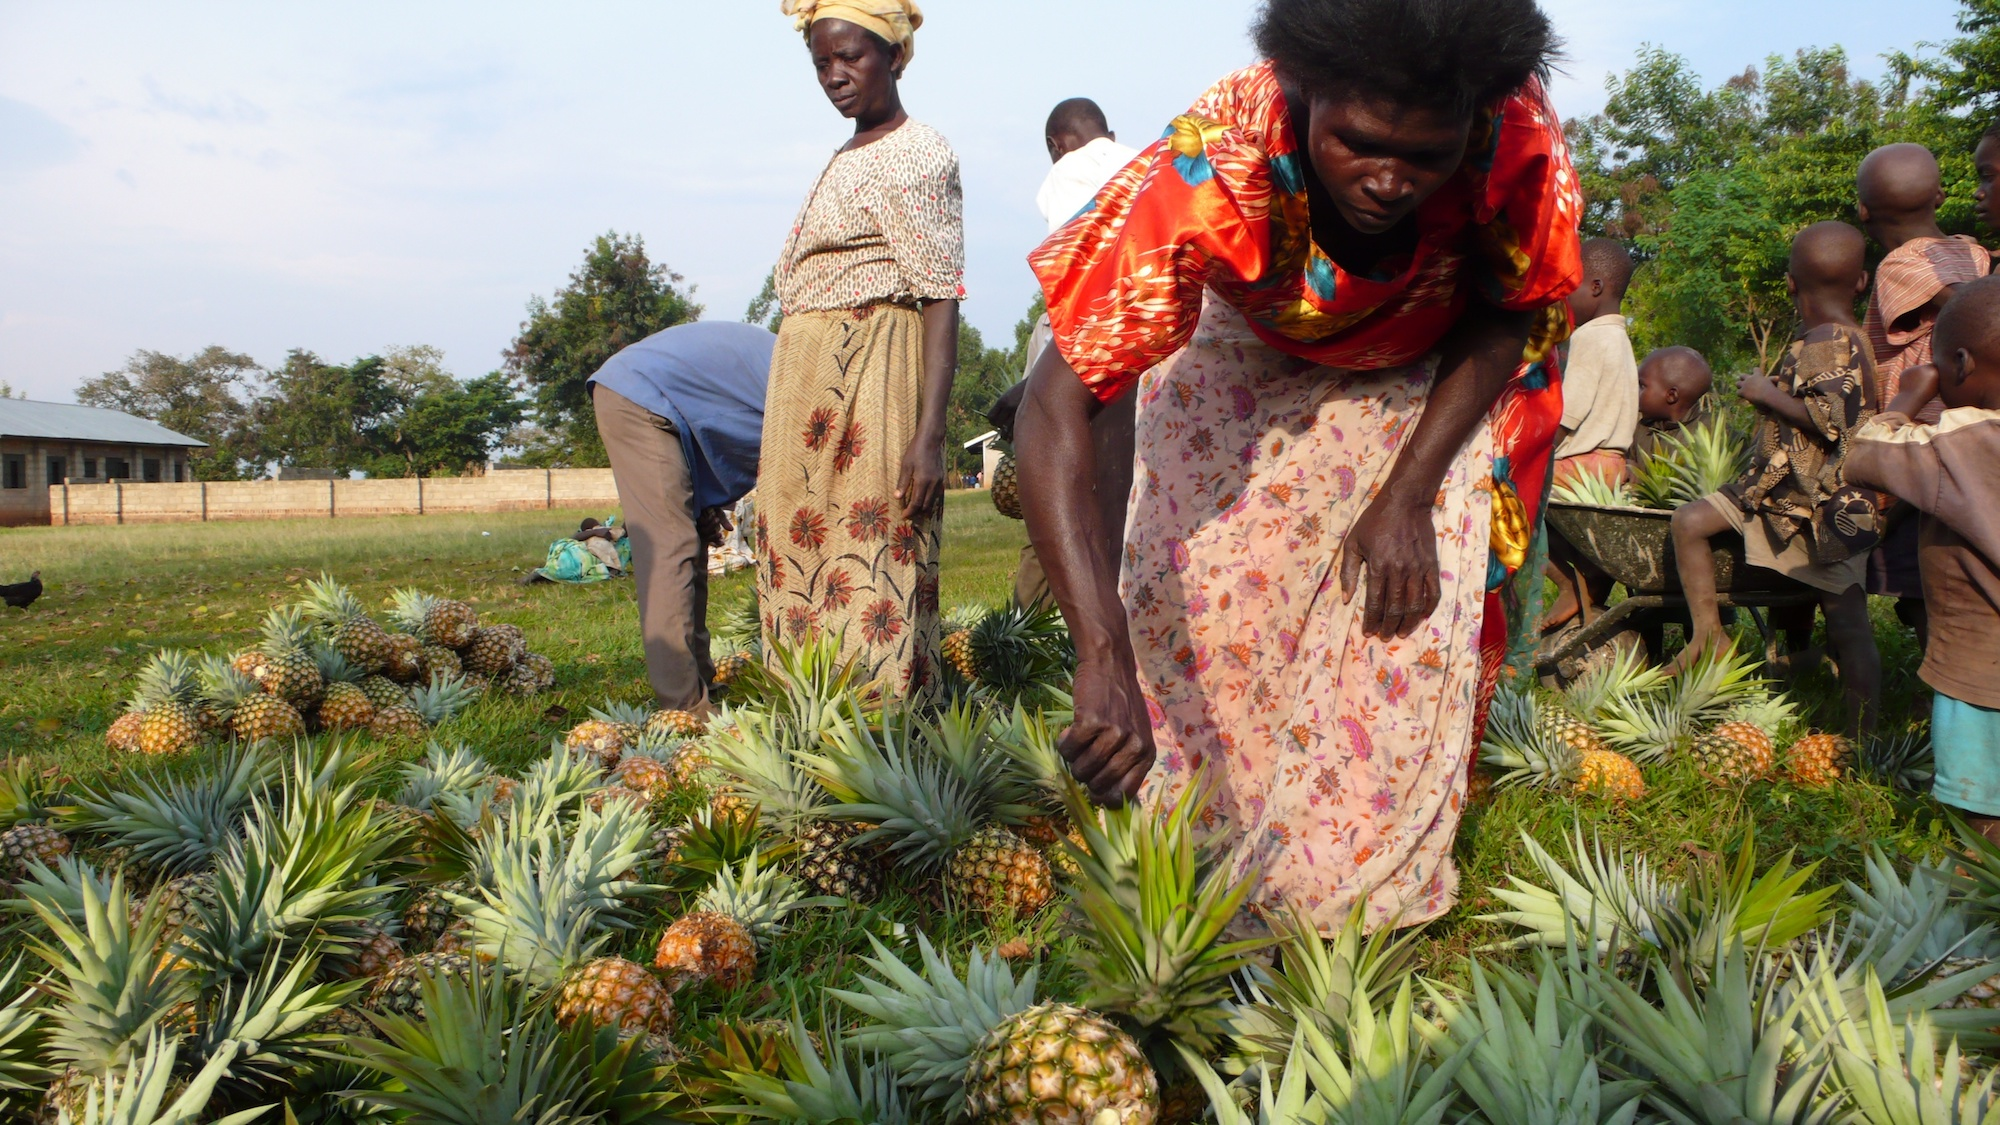 People standing amid piles of pineapples